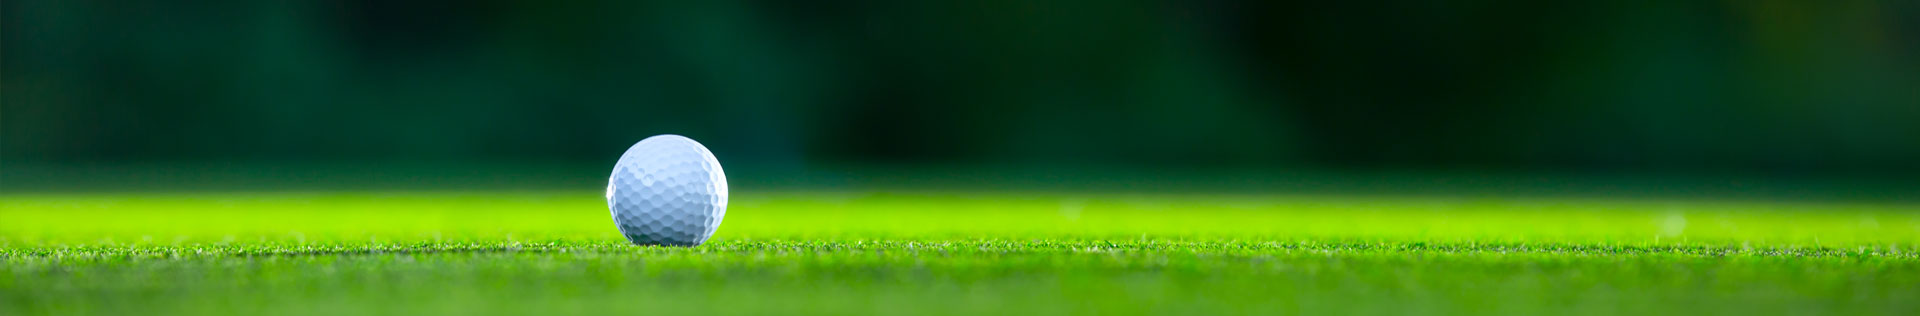 A close up photo of a golf ball on a putting green